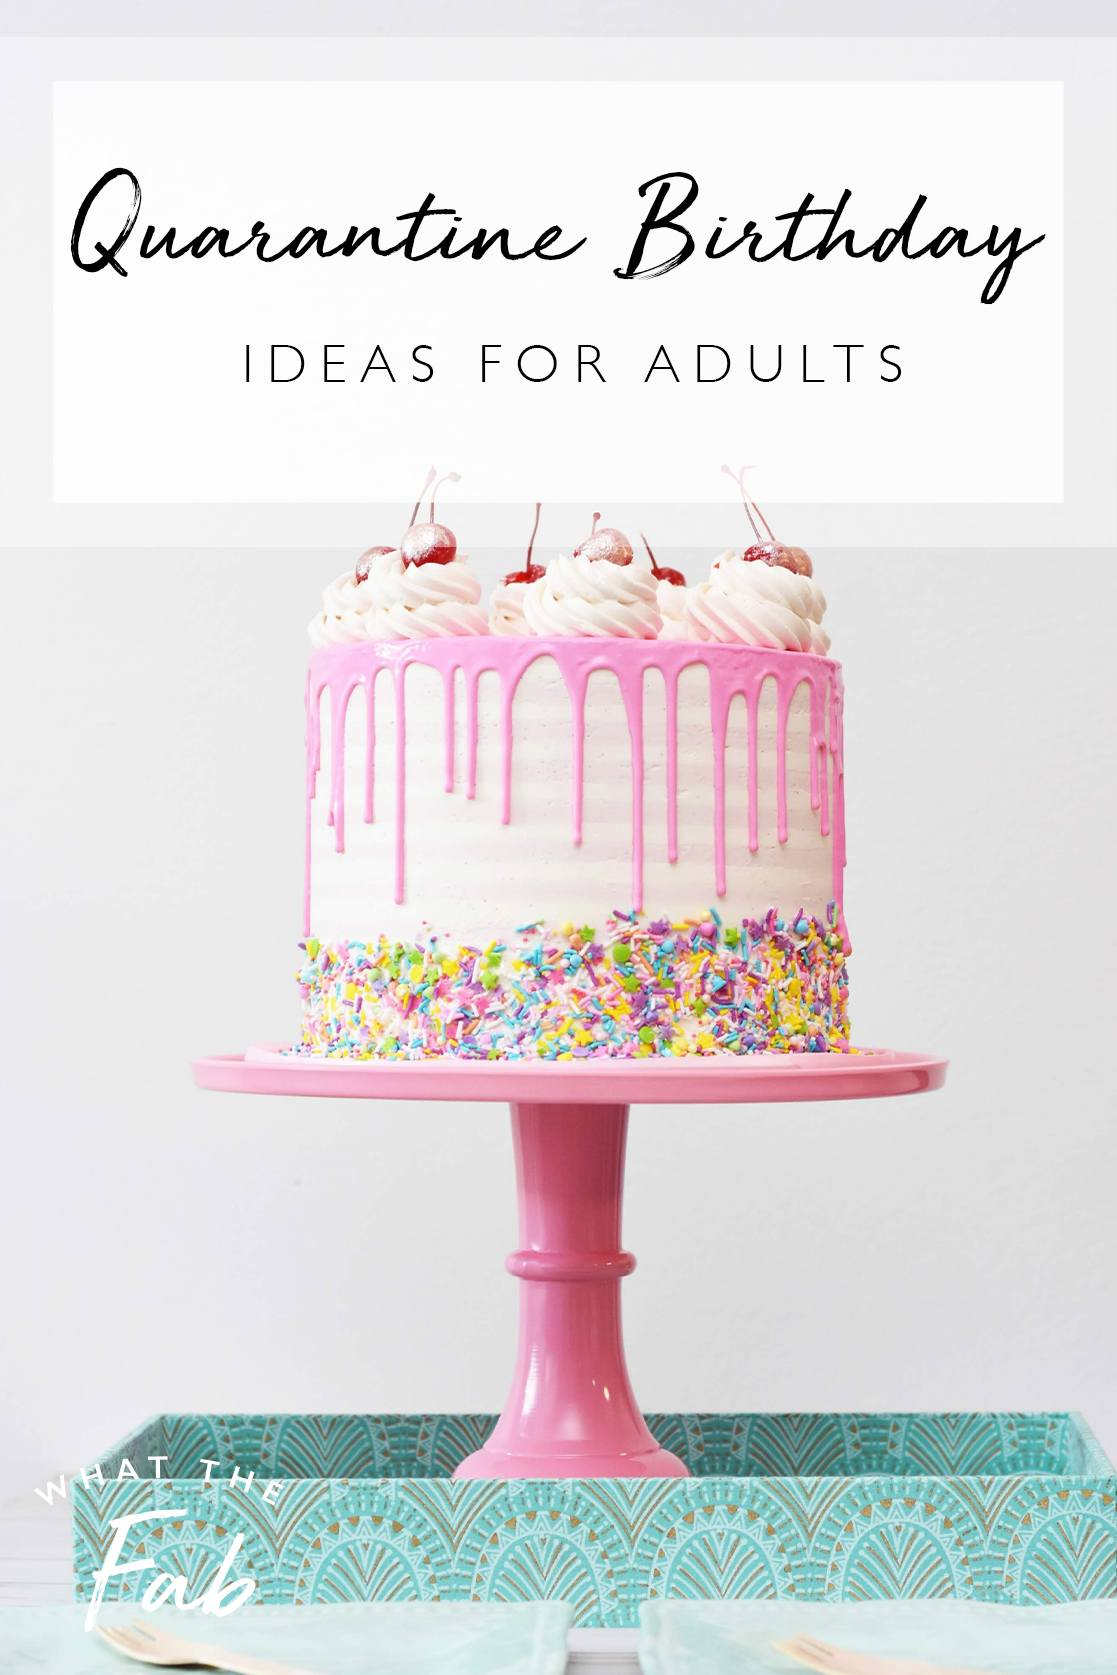 Quarantine birthday ideas for adults, by lifestyle blogger What The Fab